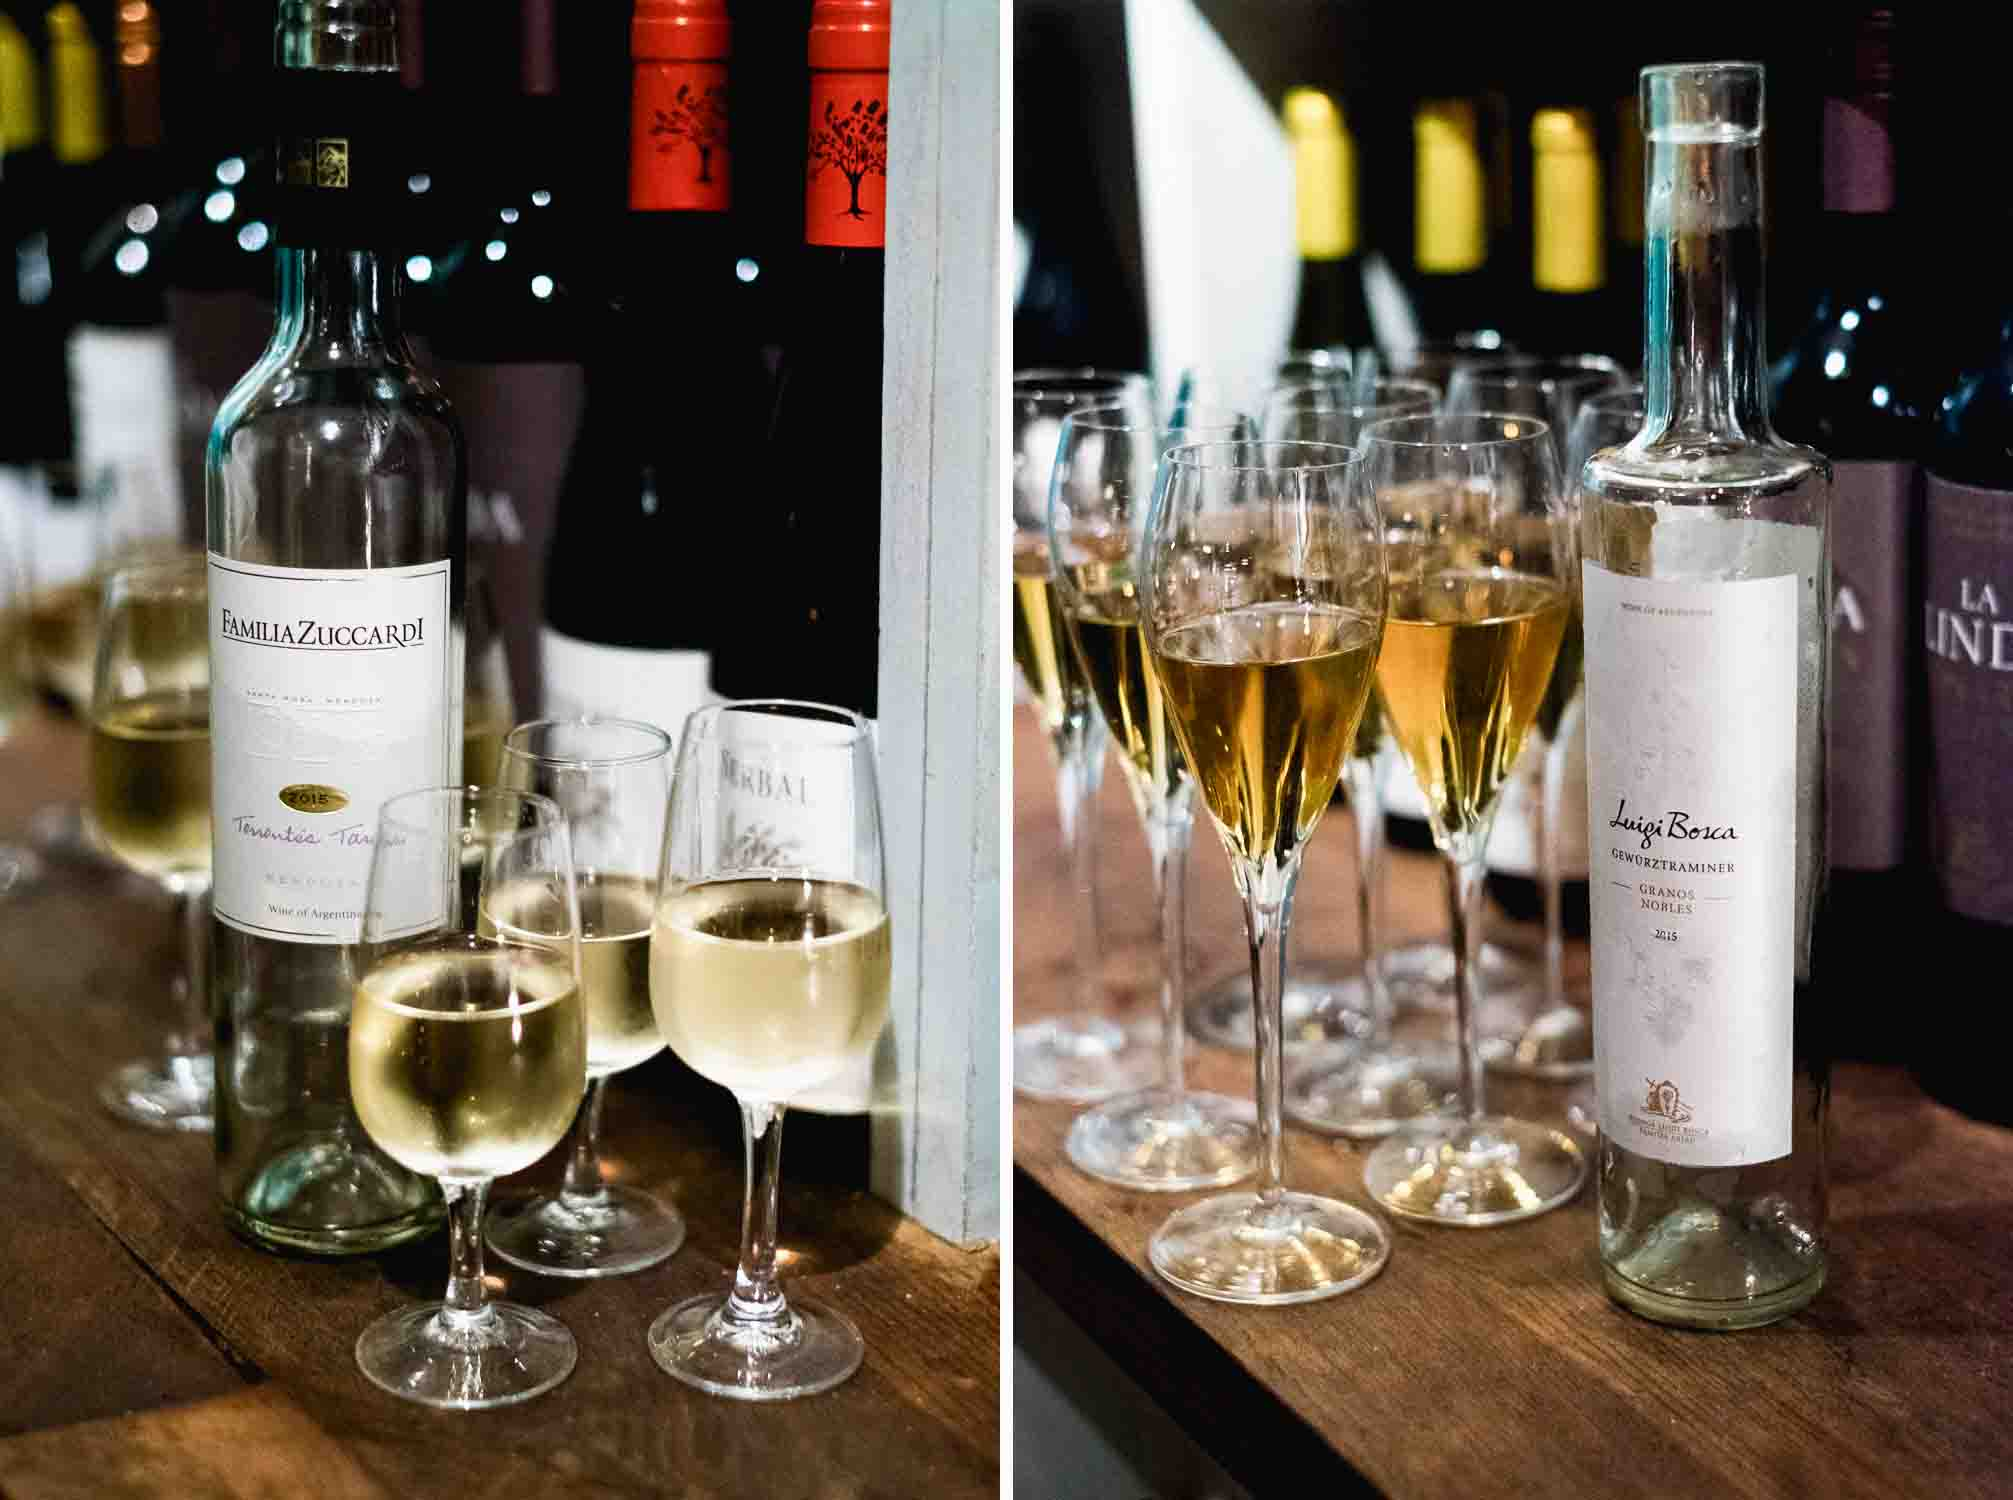 Argentinian Wine tasting at Casa Malevo in Connaught Village